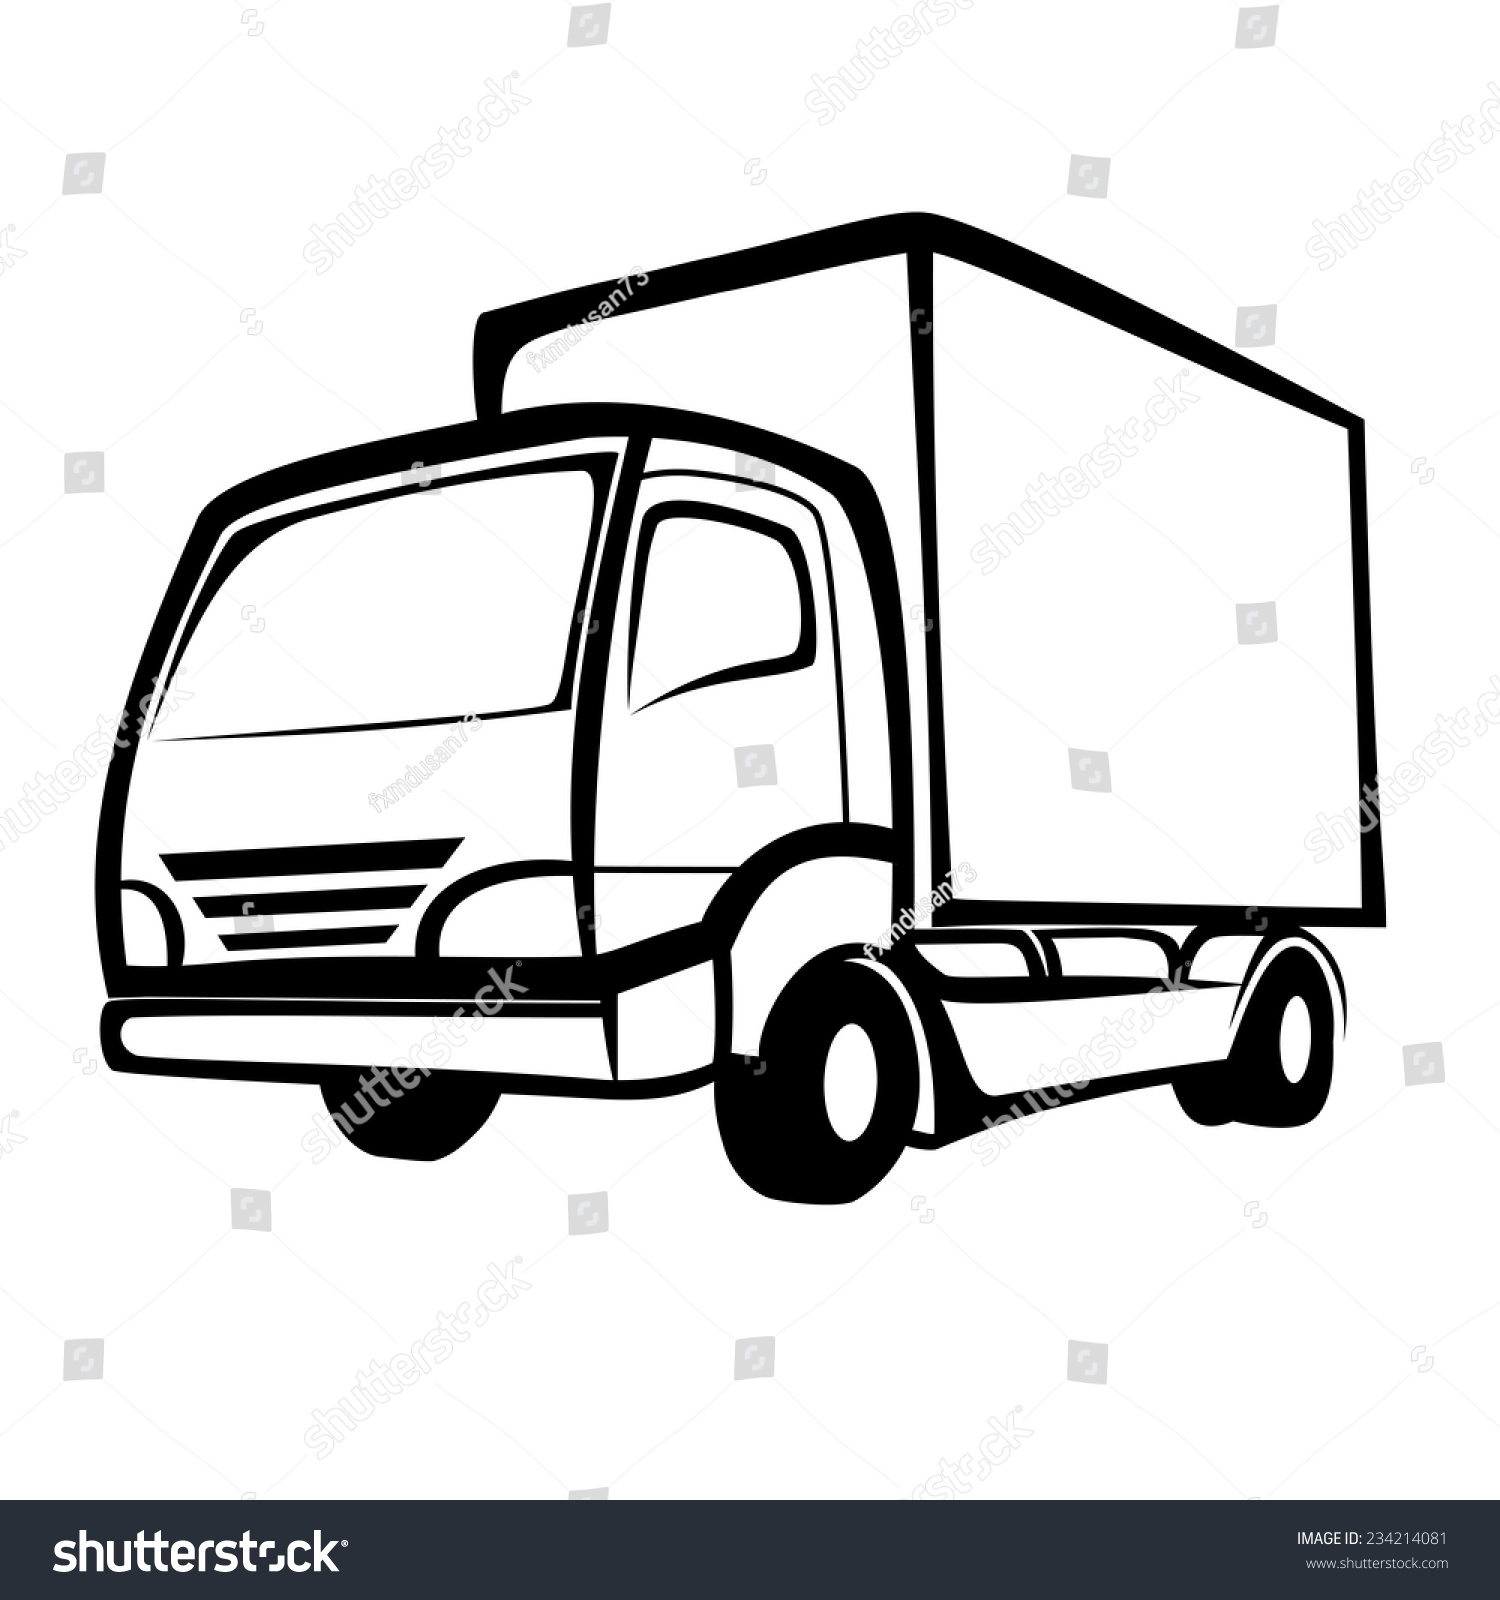 delivery truck vector - photo #33